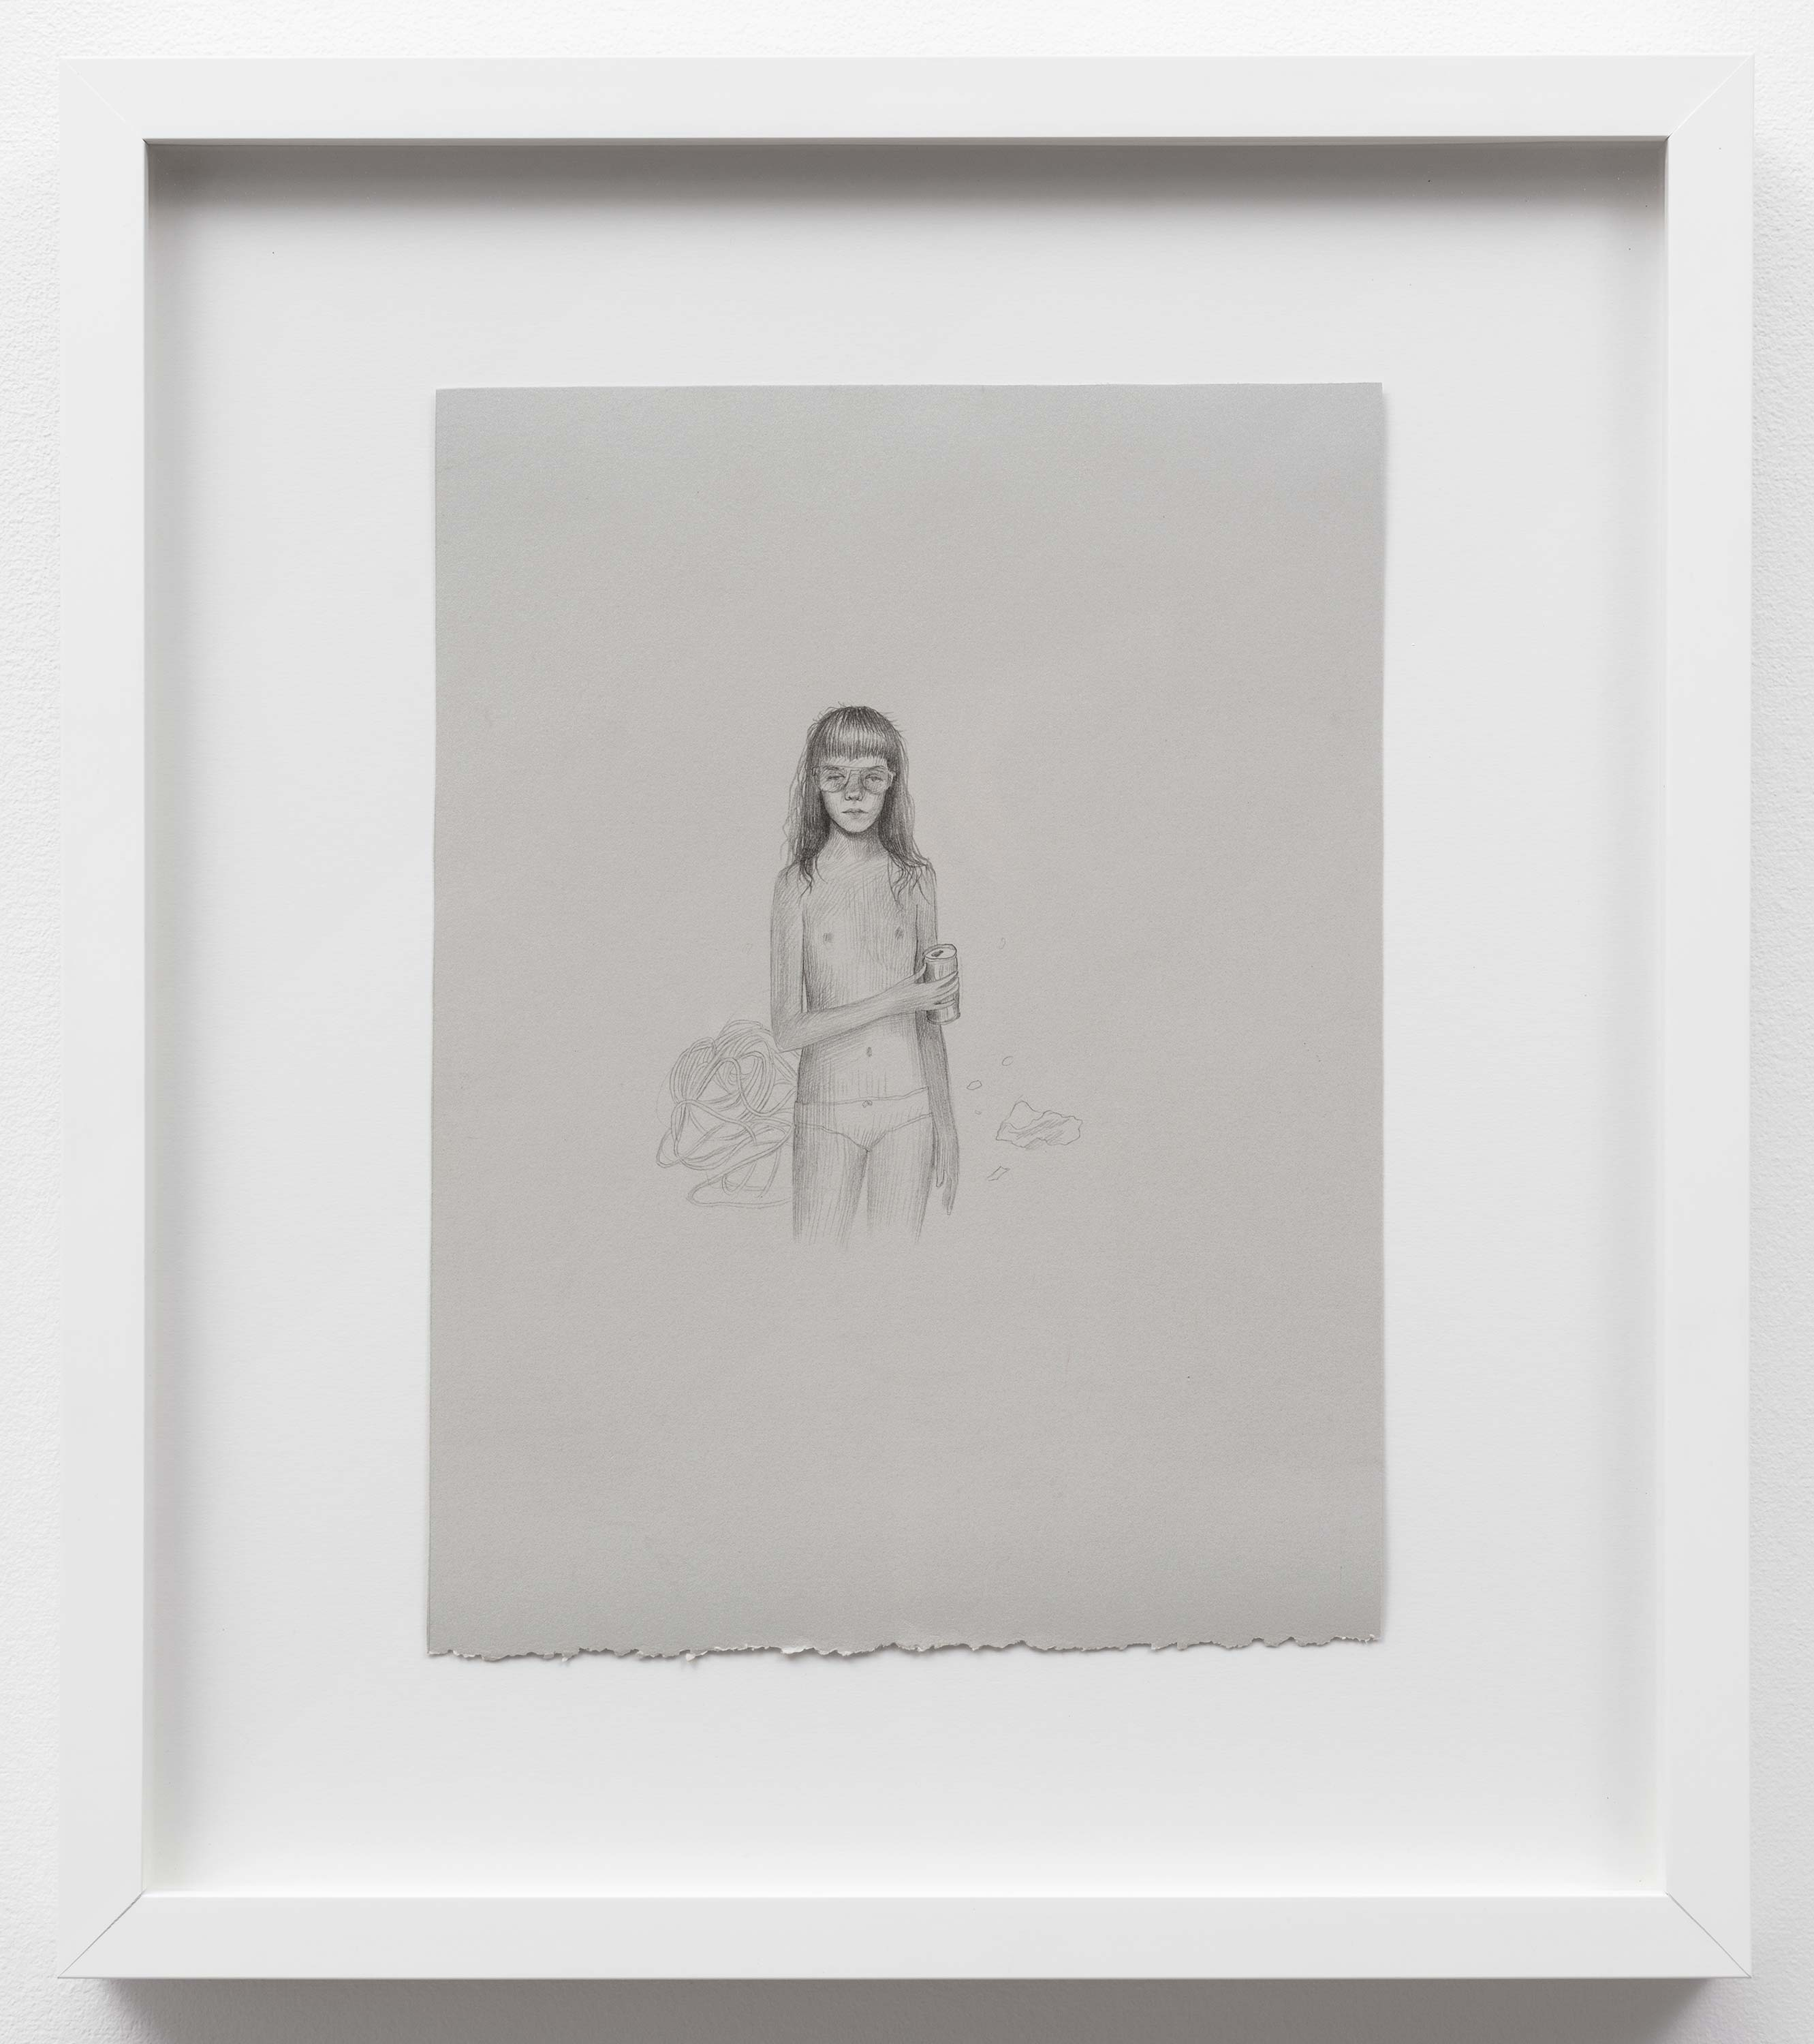 Brandi Twilley<br>Self-Portrait<br>2014<br>Graphite on gray paper<br>9 x 11.5 (23 x 29 cm)